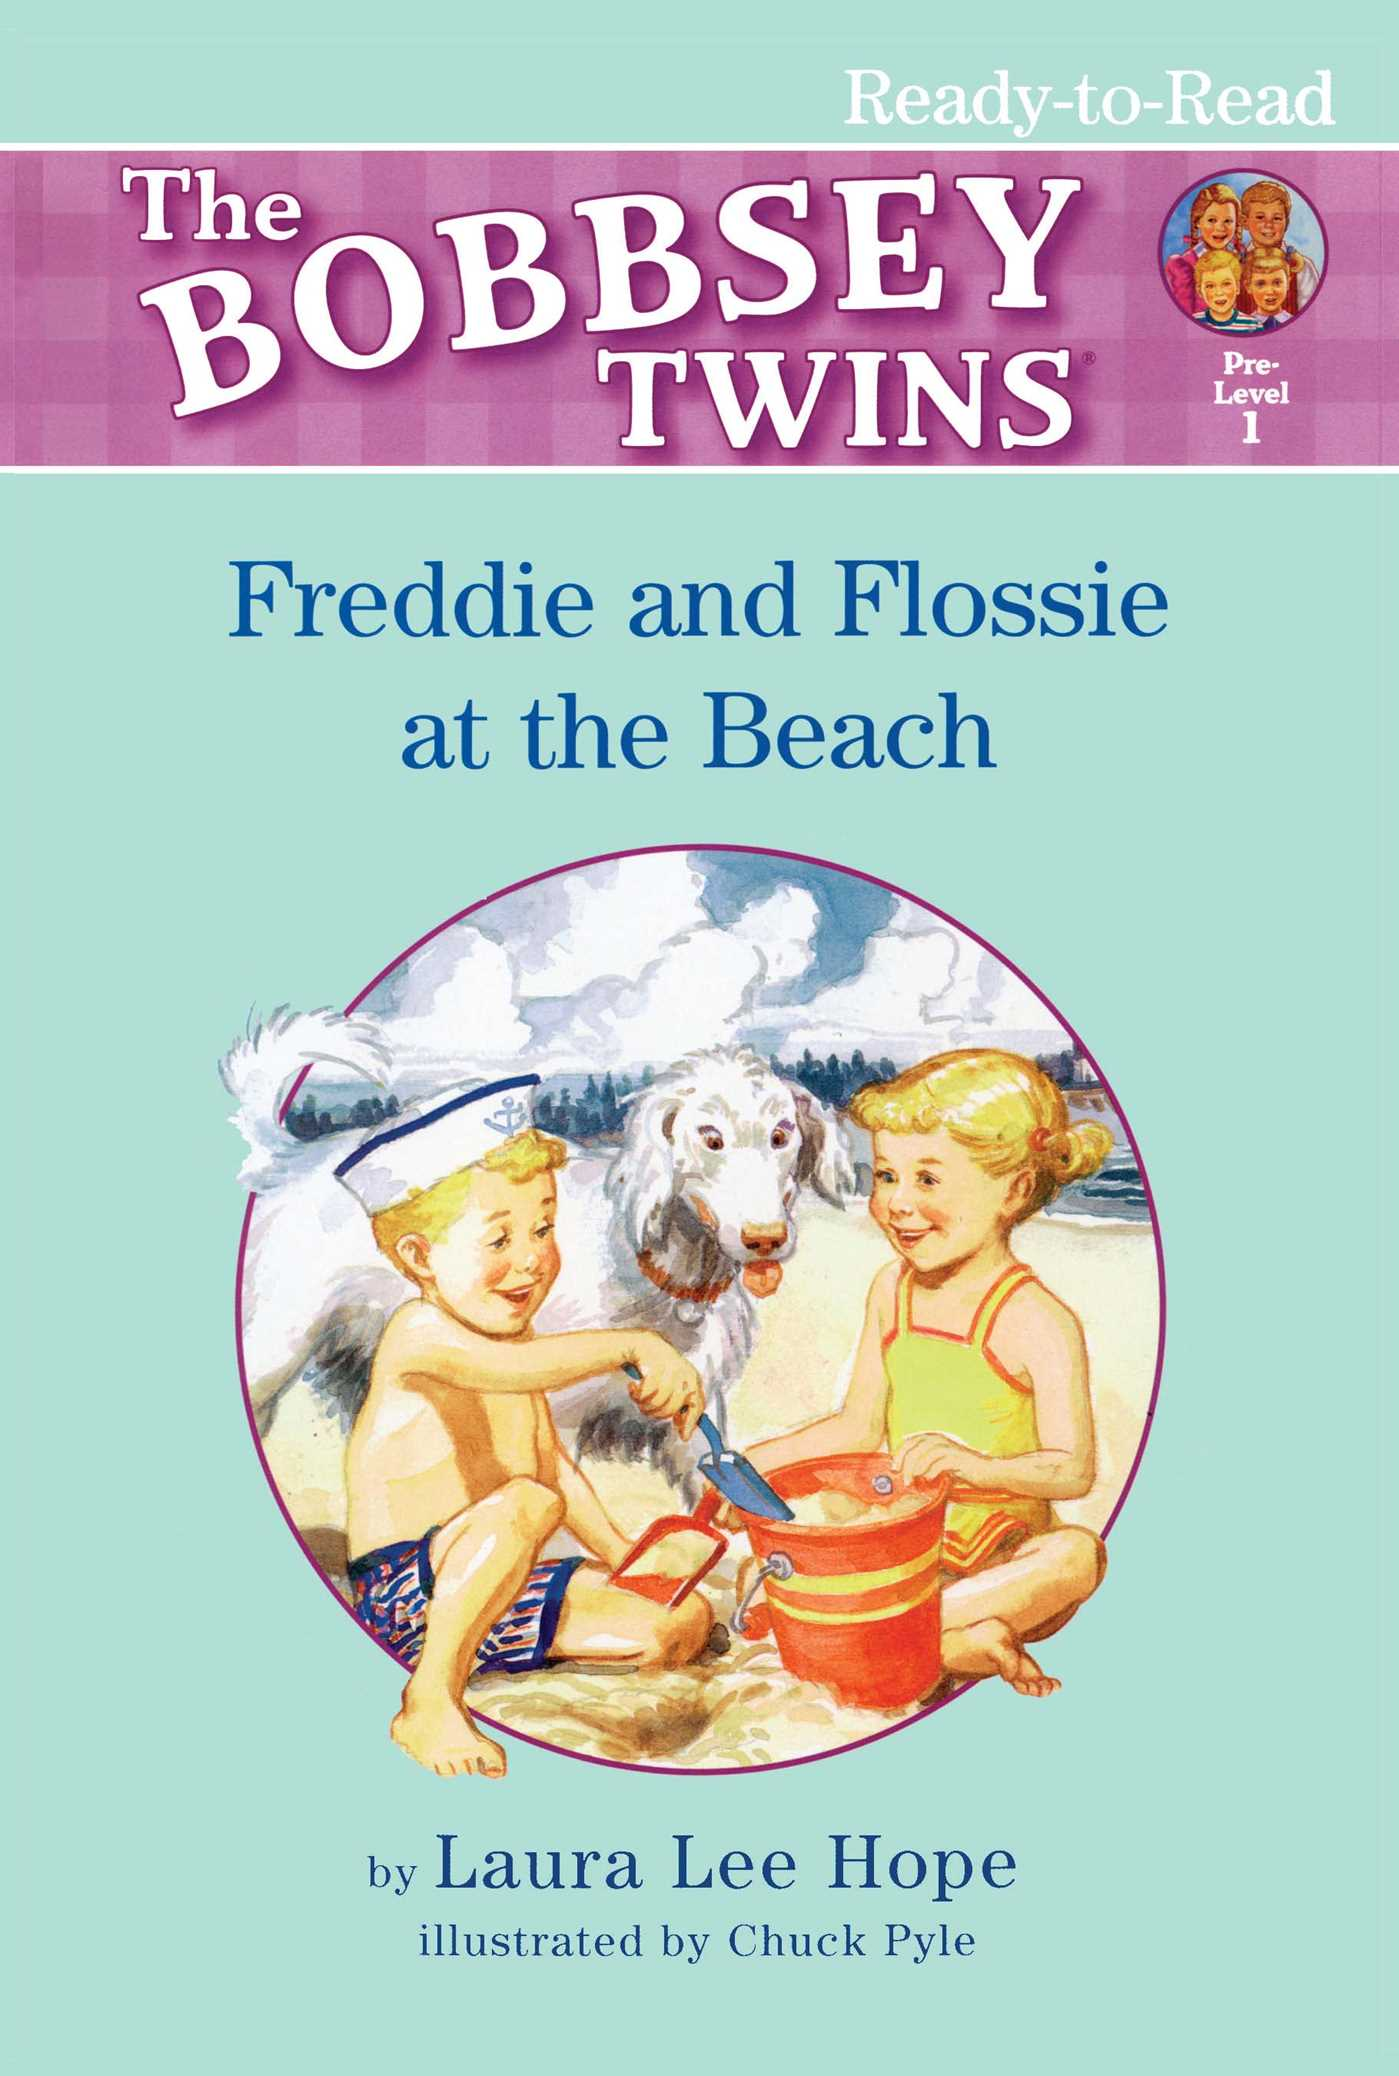 Freddie and flossie at the beach 9781416902683 hr